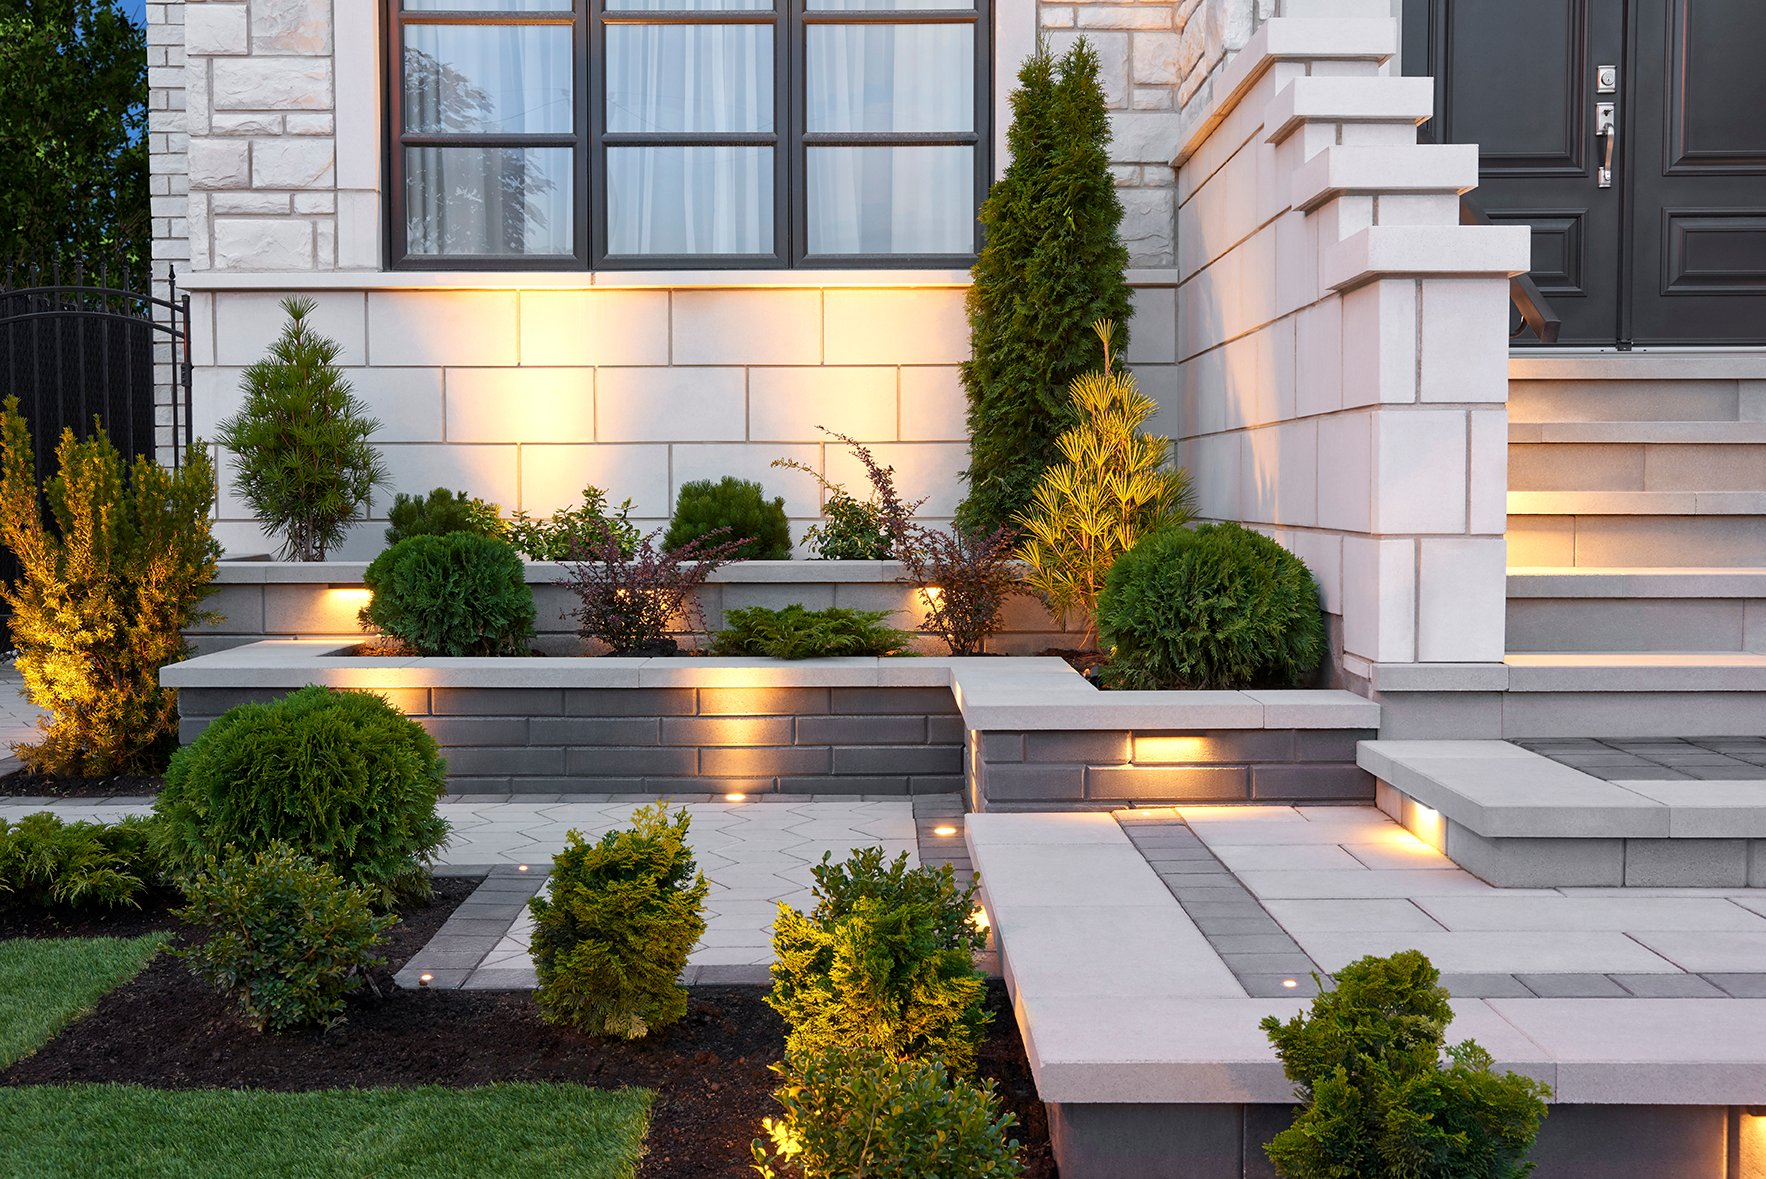 7 Retaining Wall Ideas For Your Front Yard Landscape